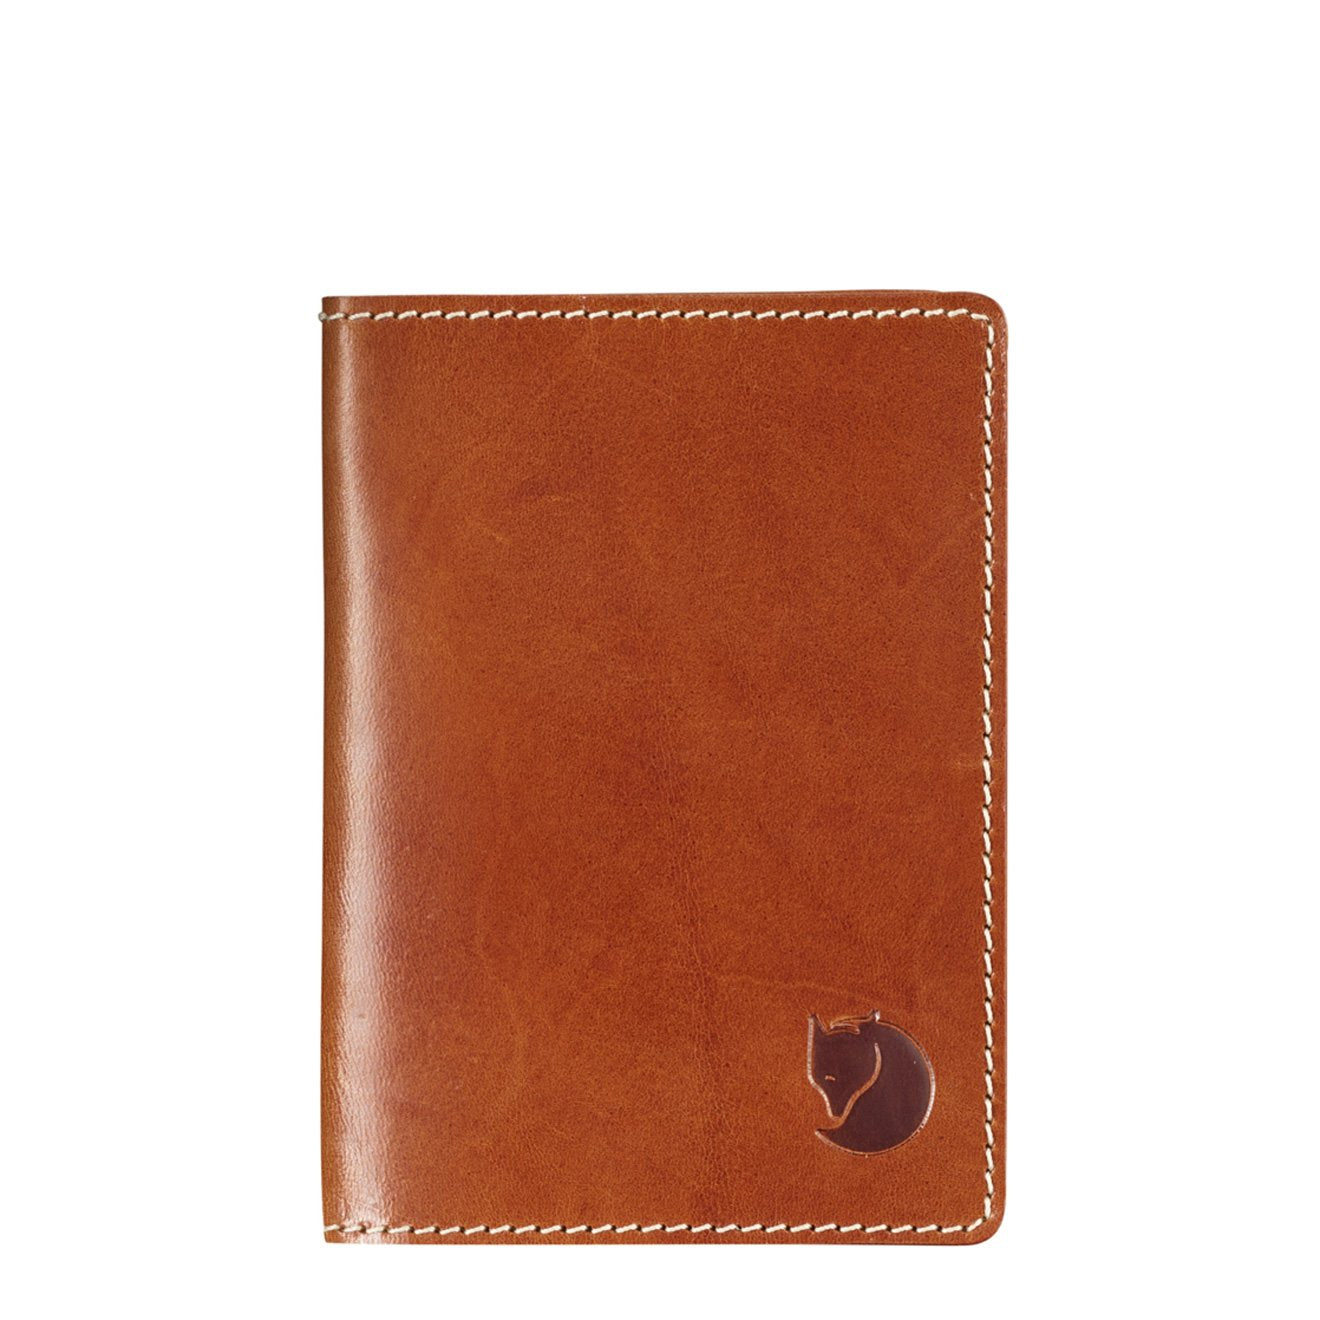 Fjallraven Leather Passport Cover Leather Cognac